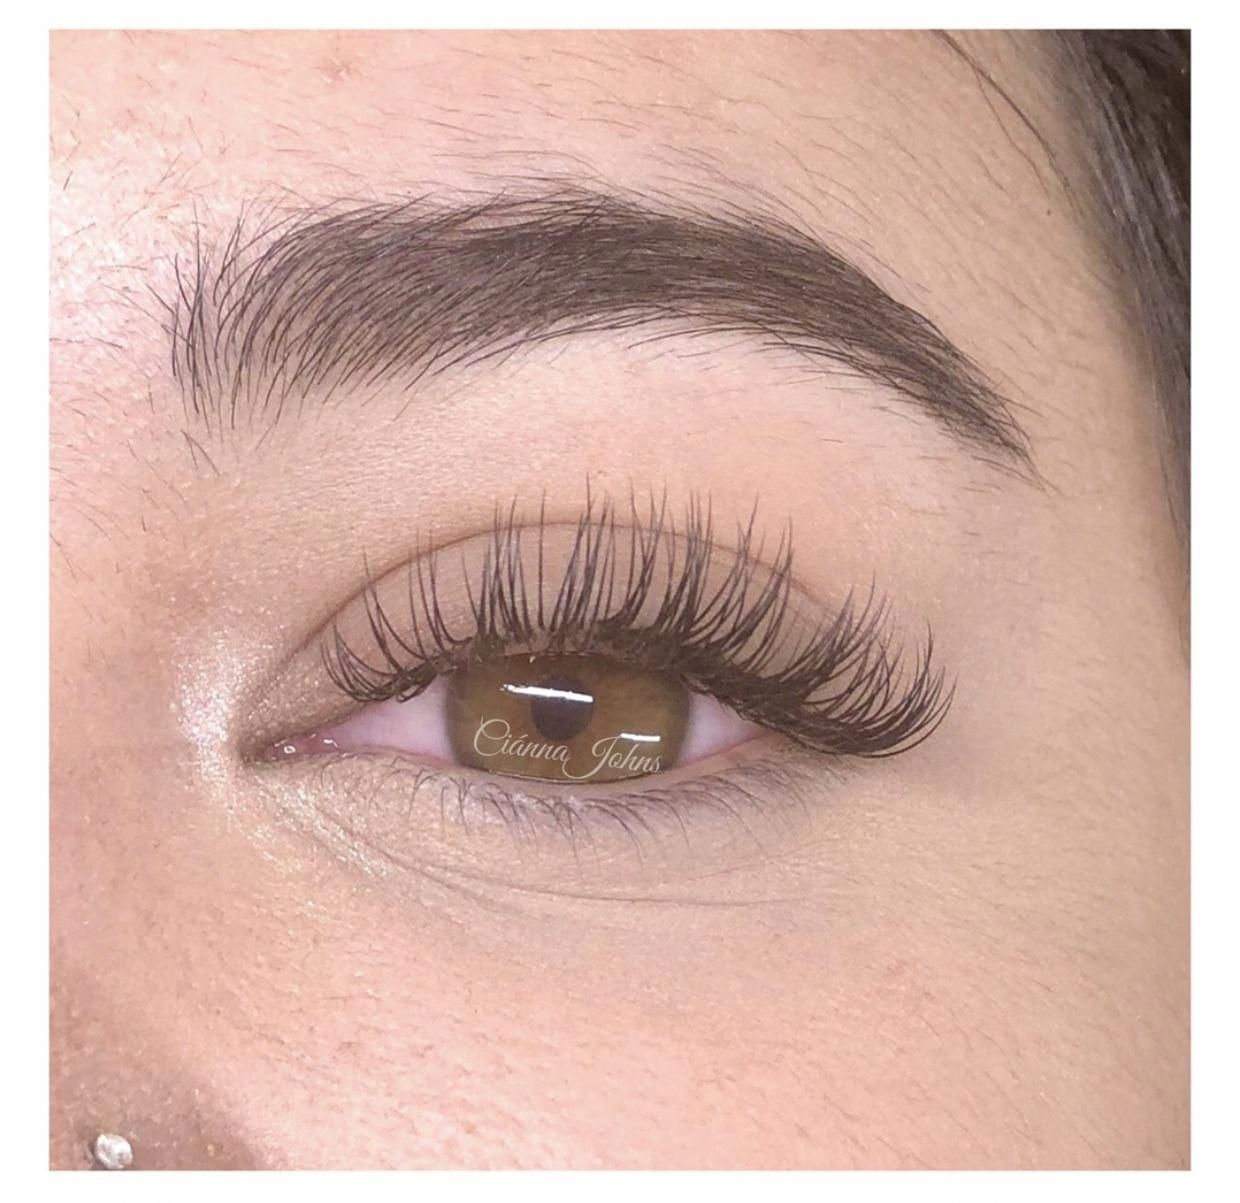 Learn All About Skin Care With These Tips Curl lashes